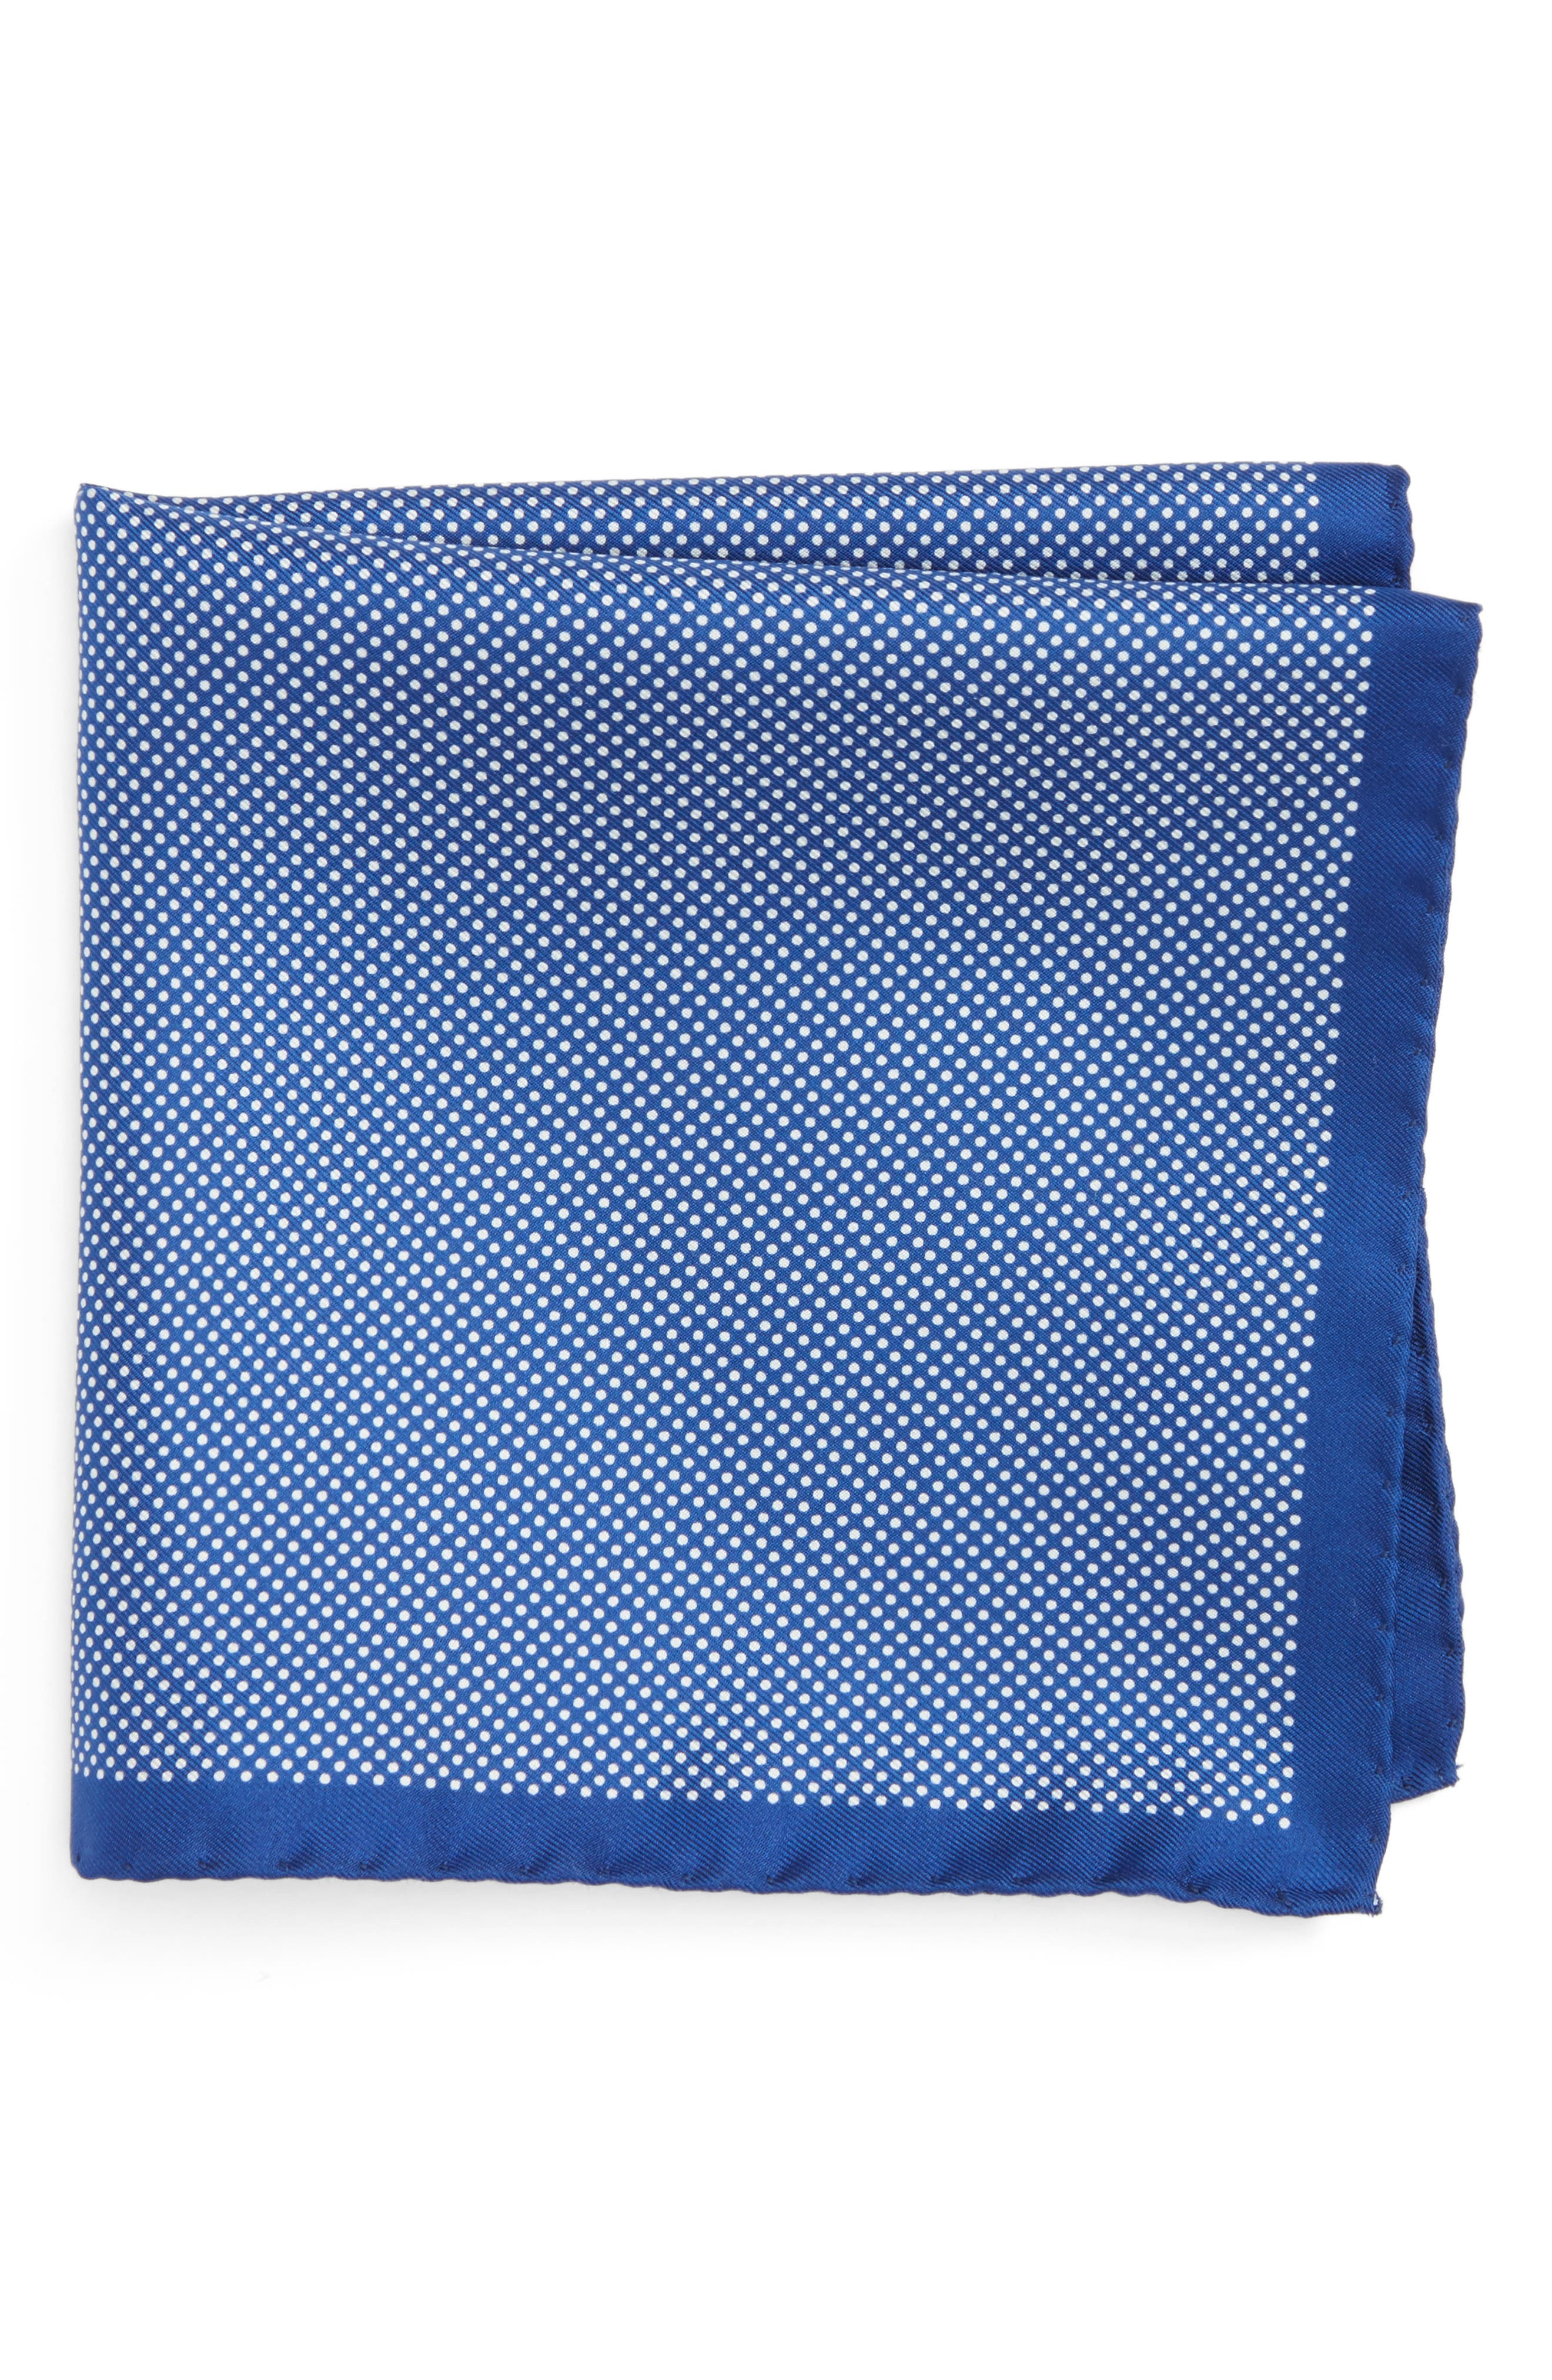 Dot Silk Pocket Square,                             Main thumbnail 1, color,                             BLUE